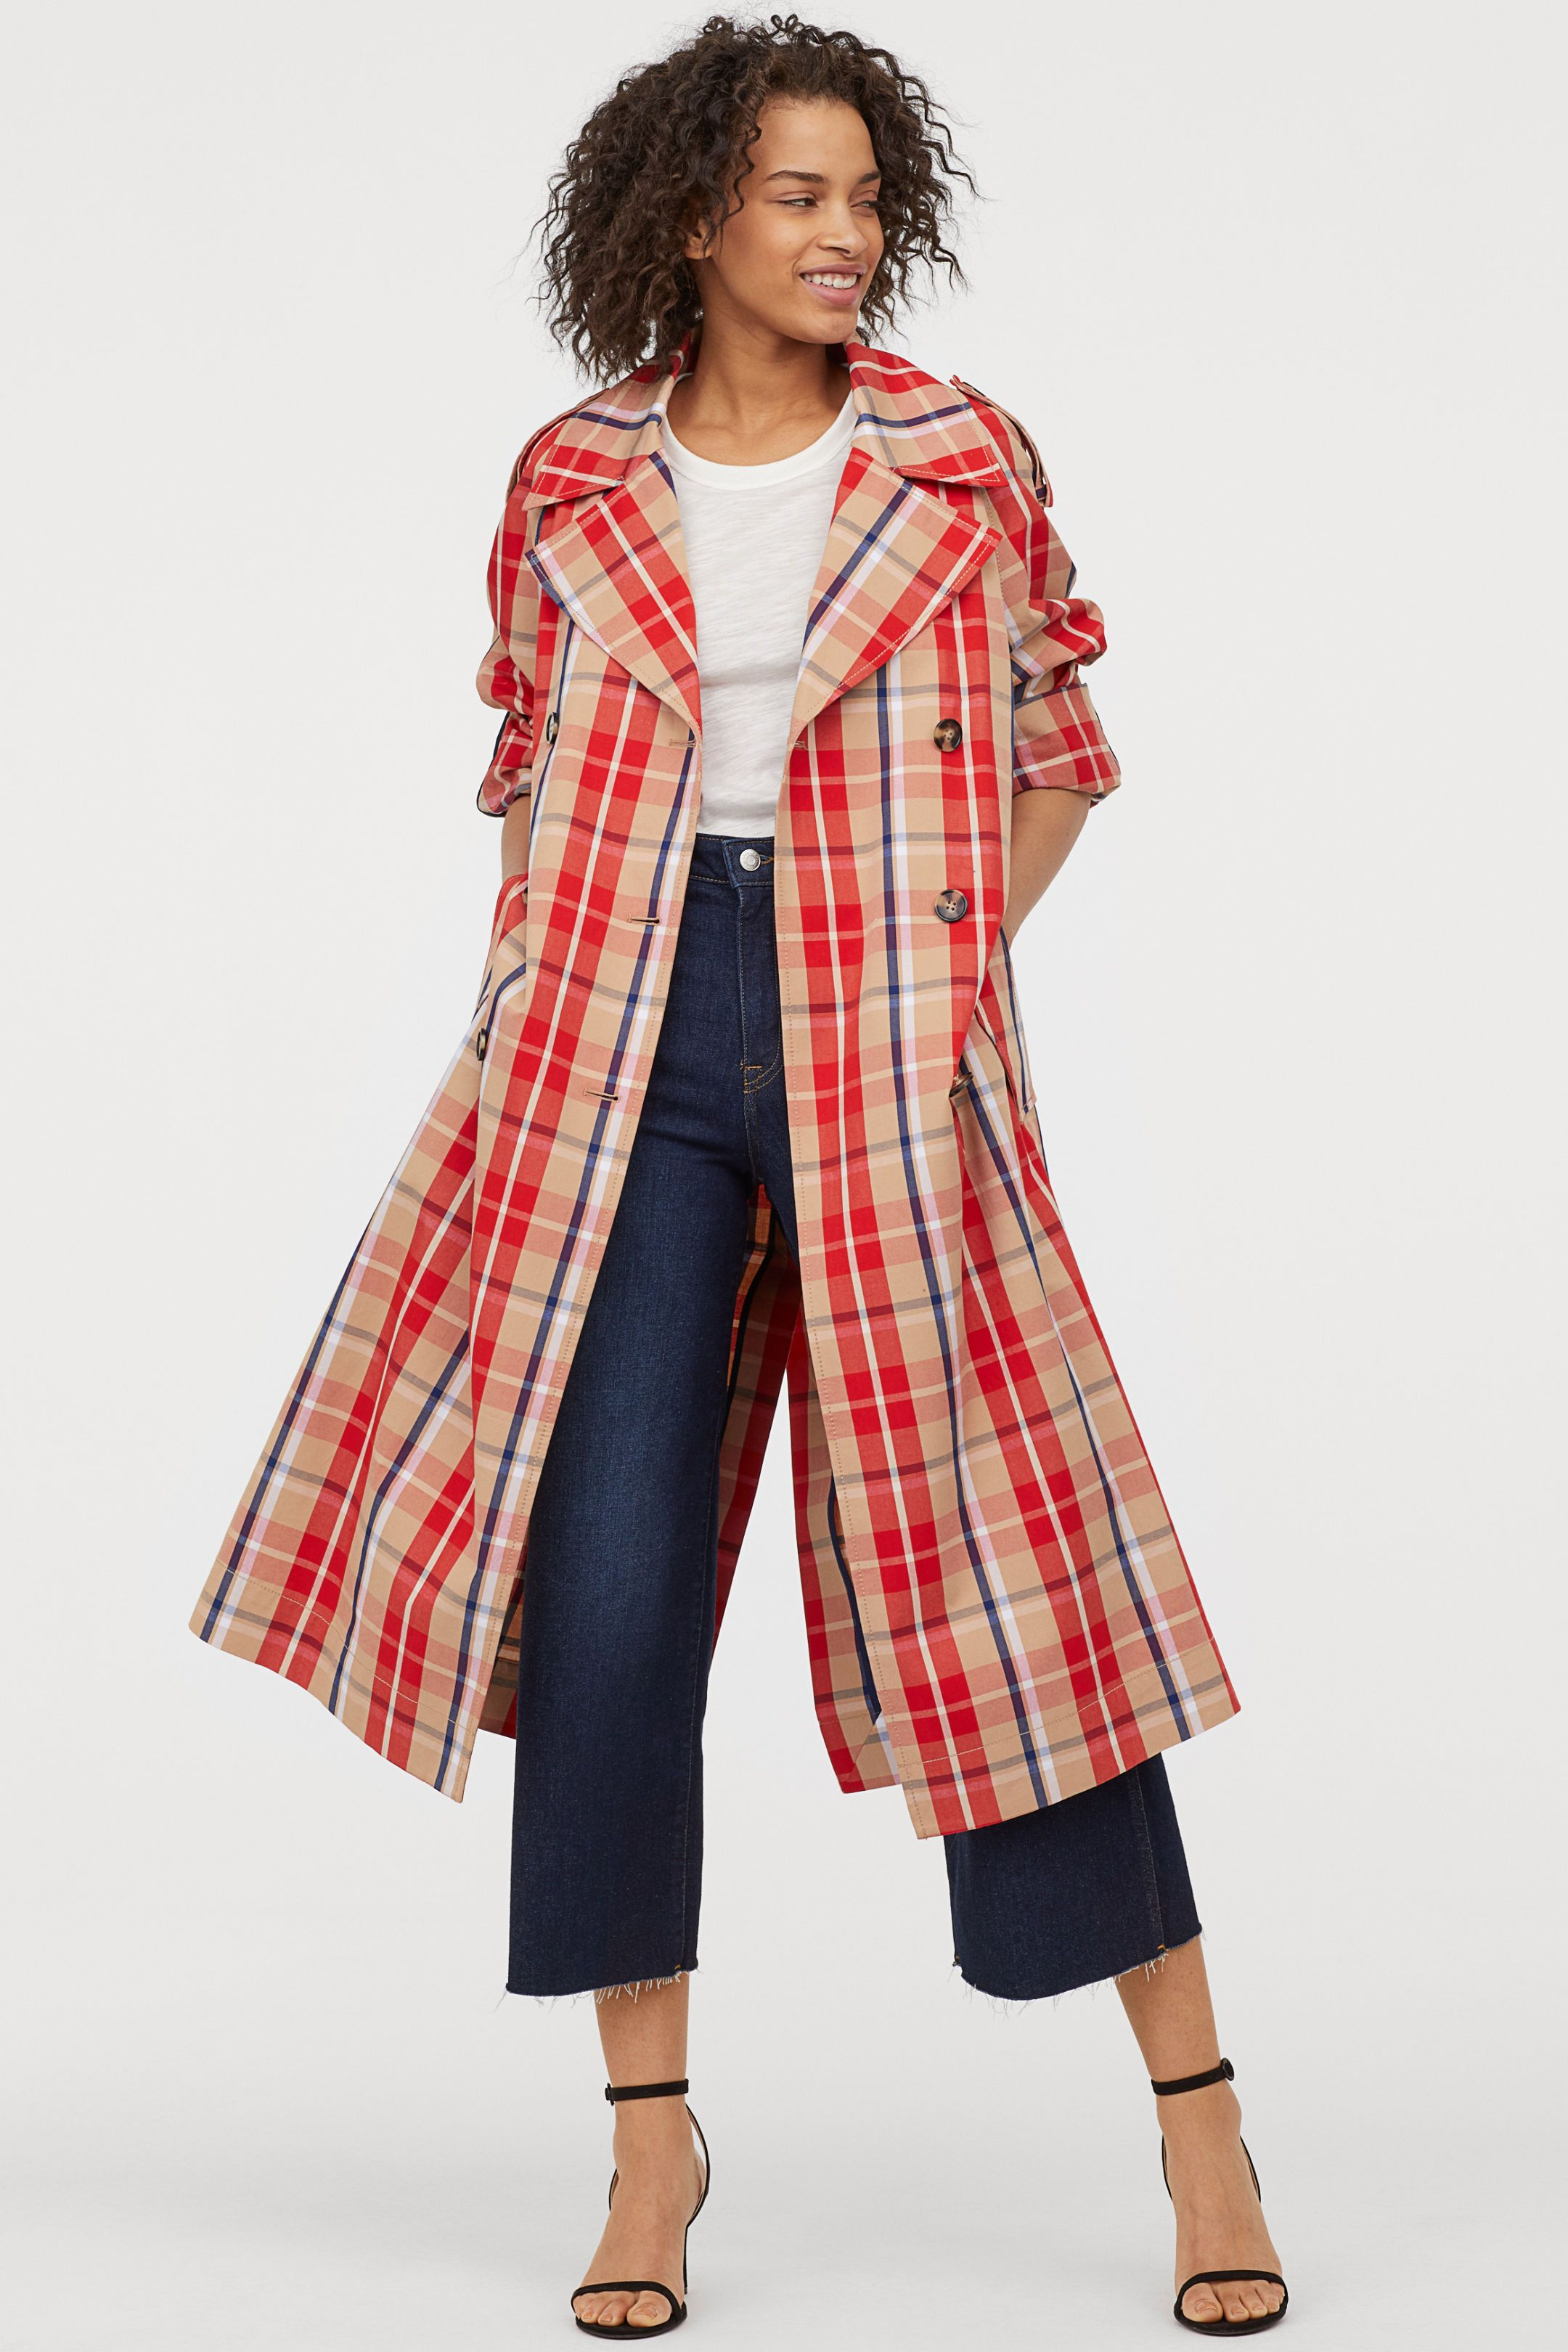 H&M checked trench coat